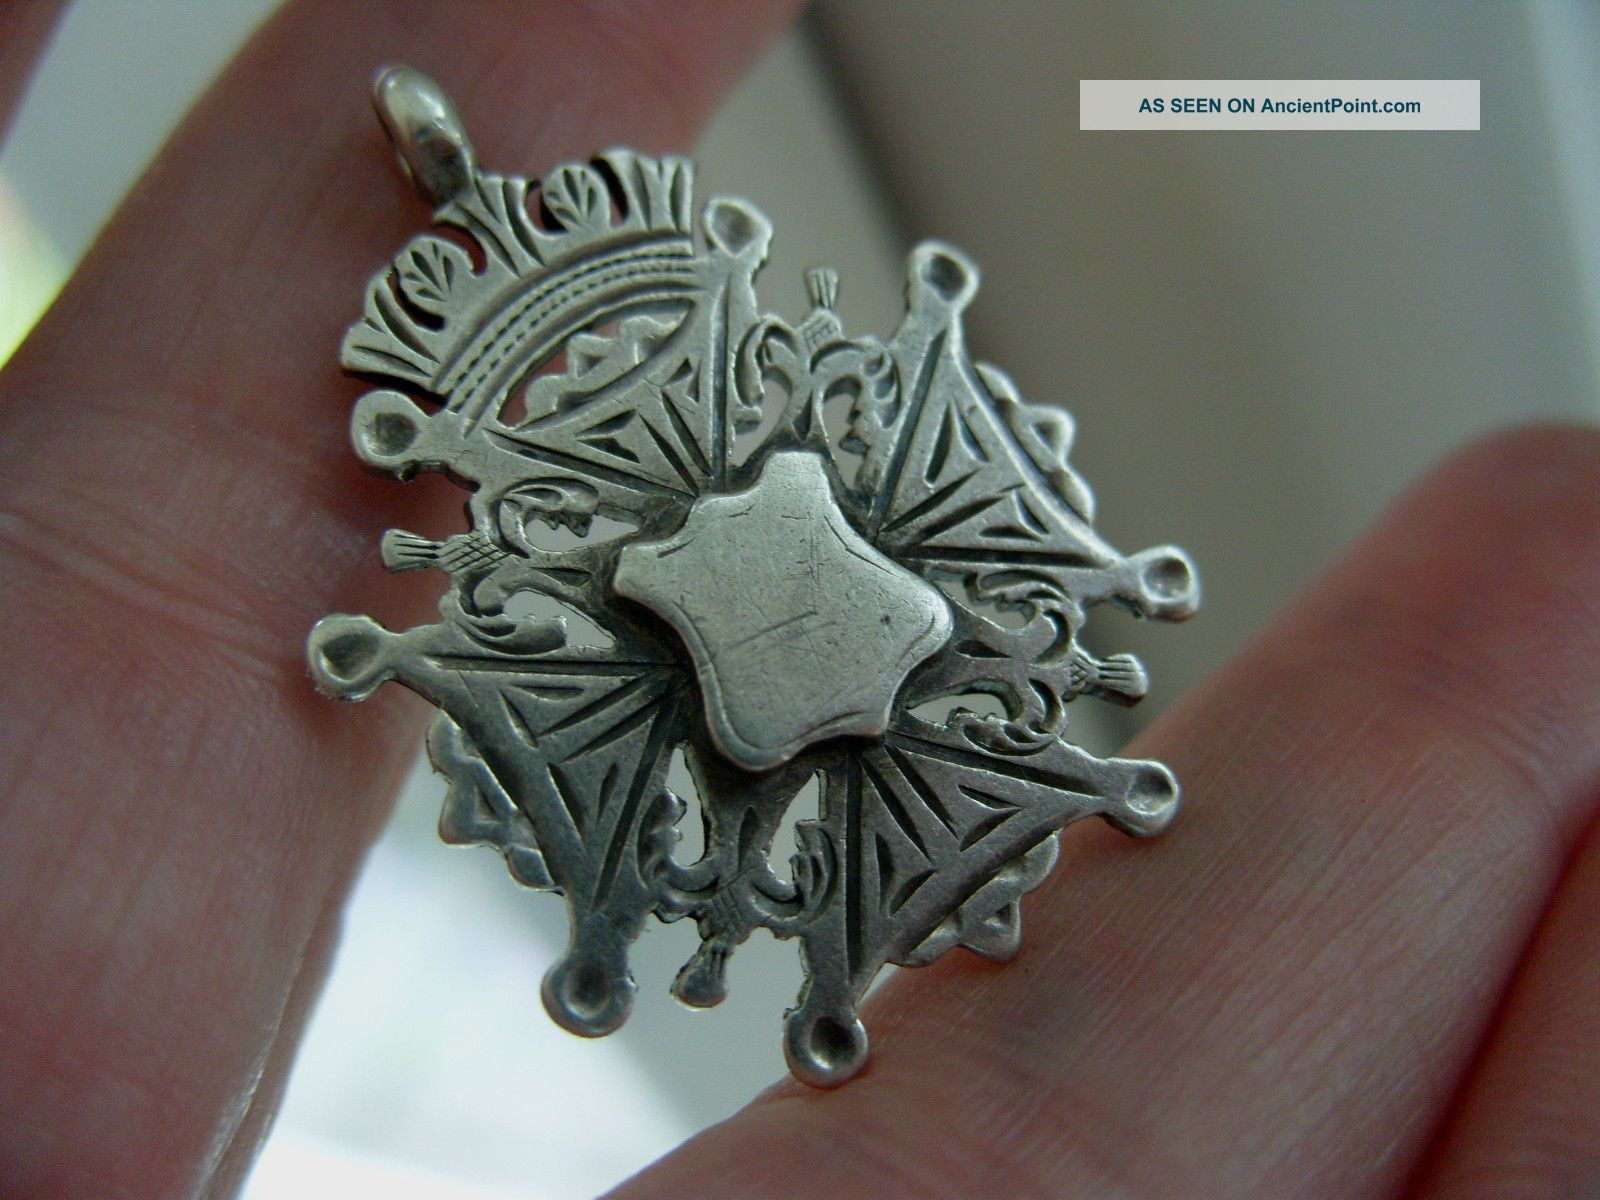 Antique 1895 Full English Hallmark Silver Albert Pocket Watch Chain Fob Medal Pocket Watches/ Chains/ Fobs photo